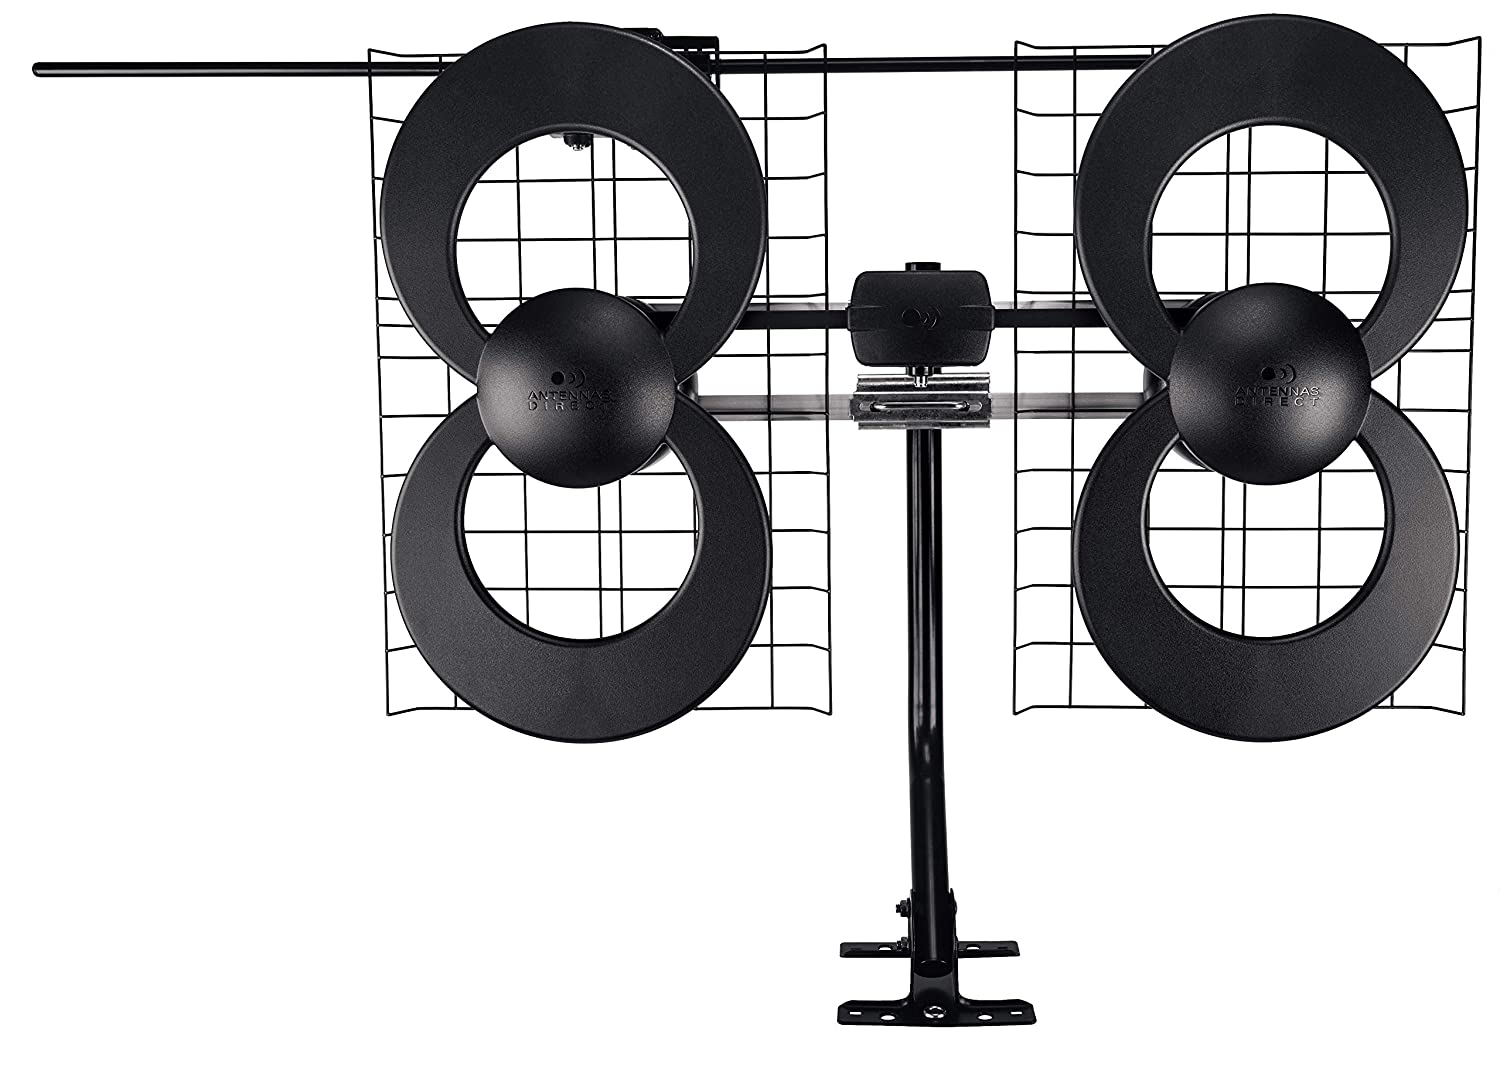 Top 5 Best Outdoor TV Antenna Consumer Reports - Buyer's Guide 1